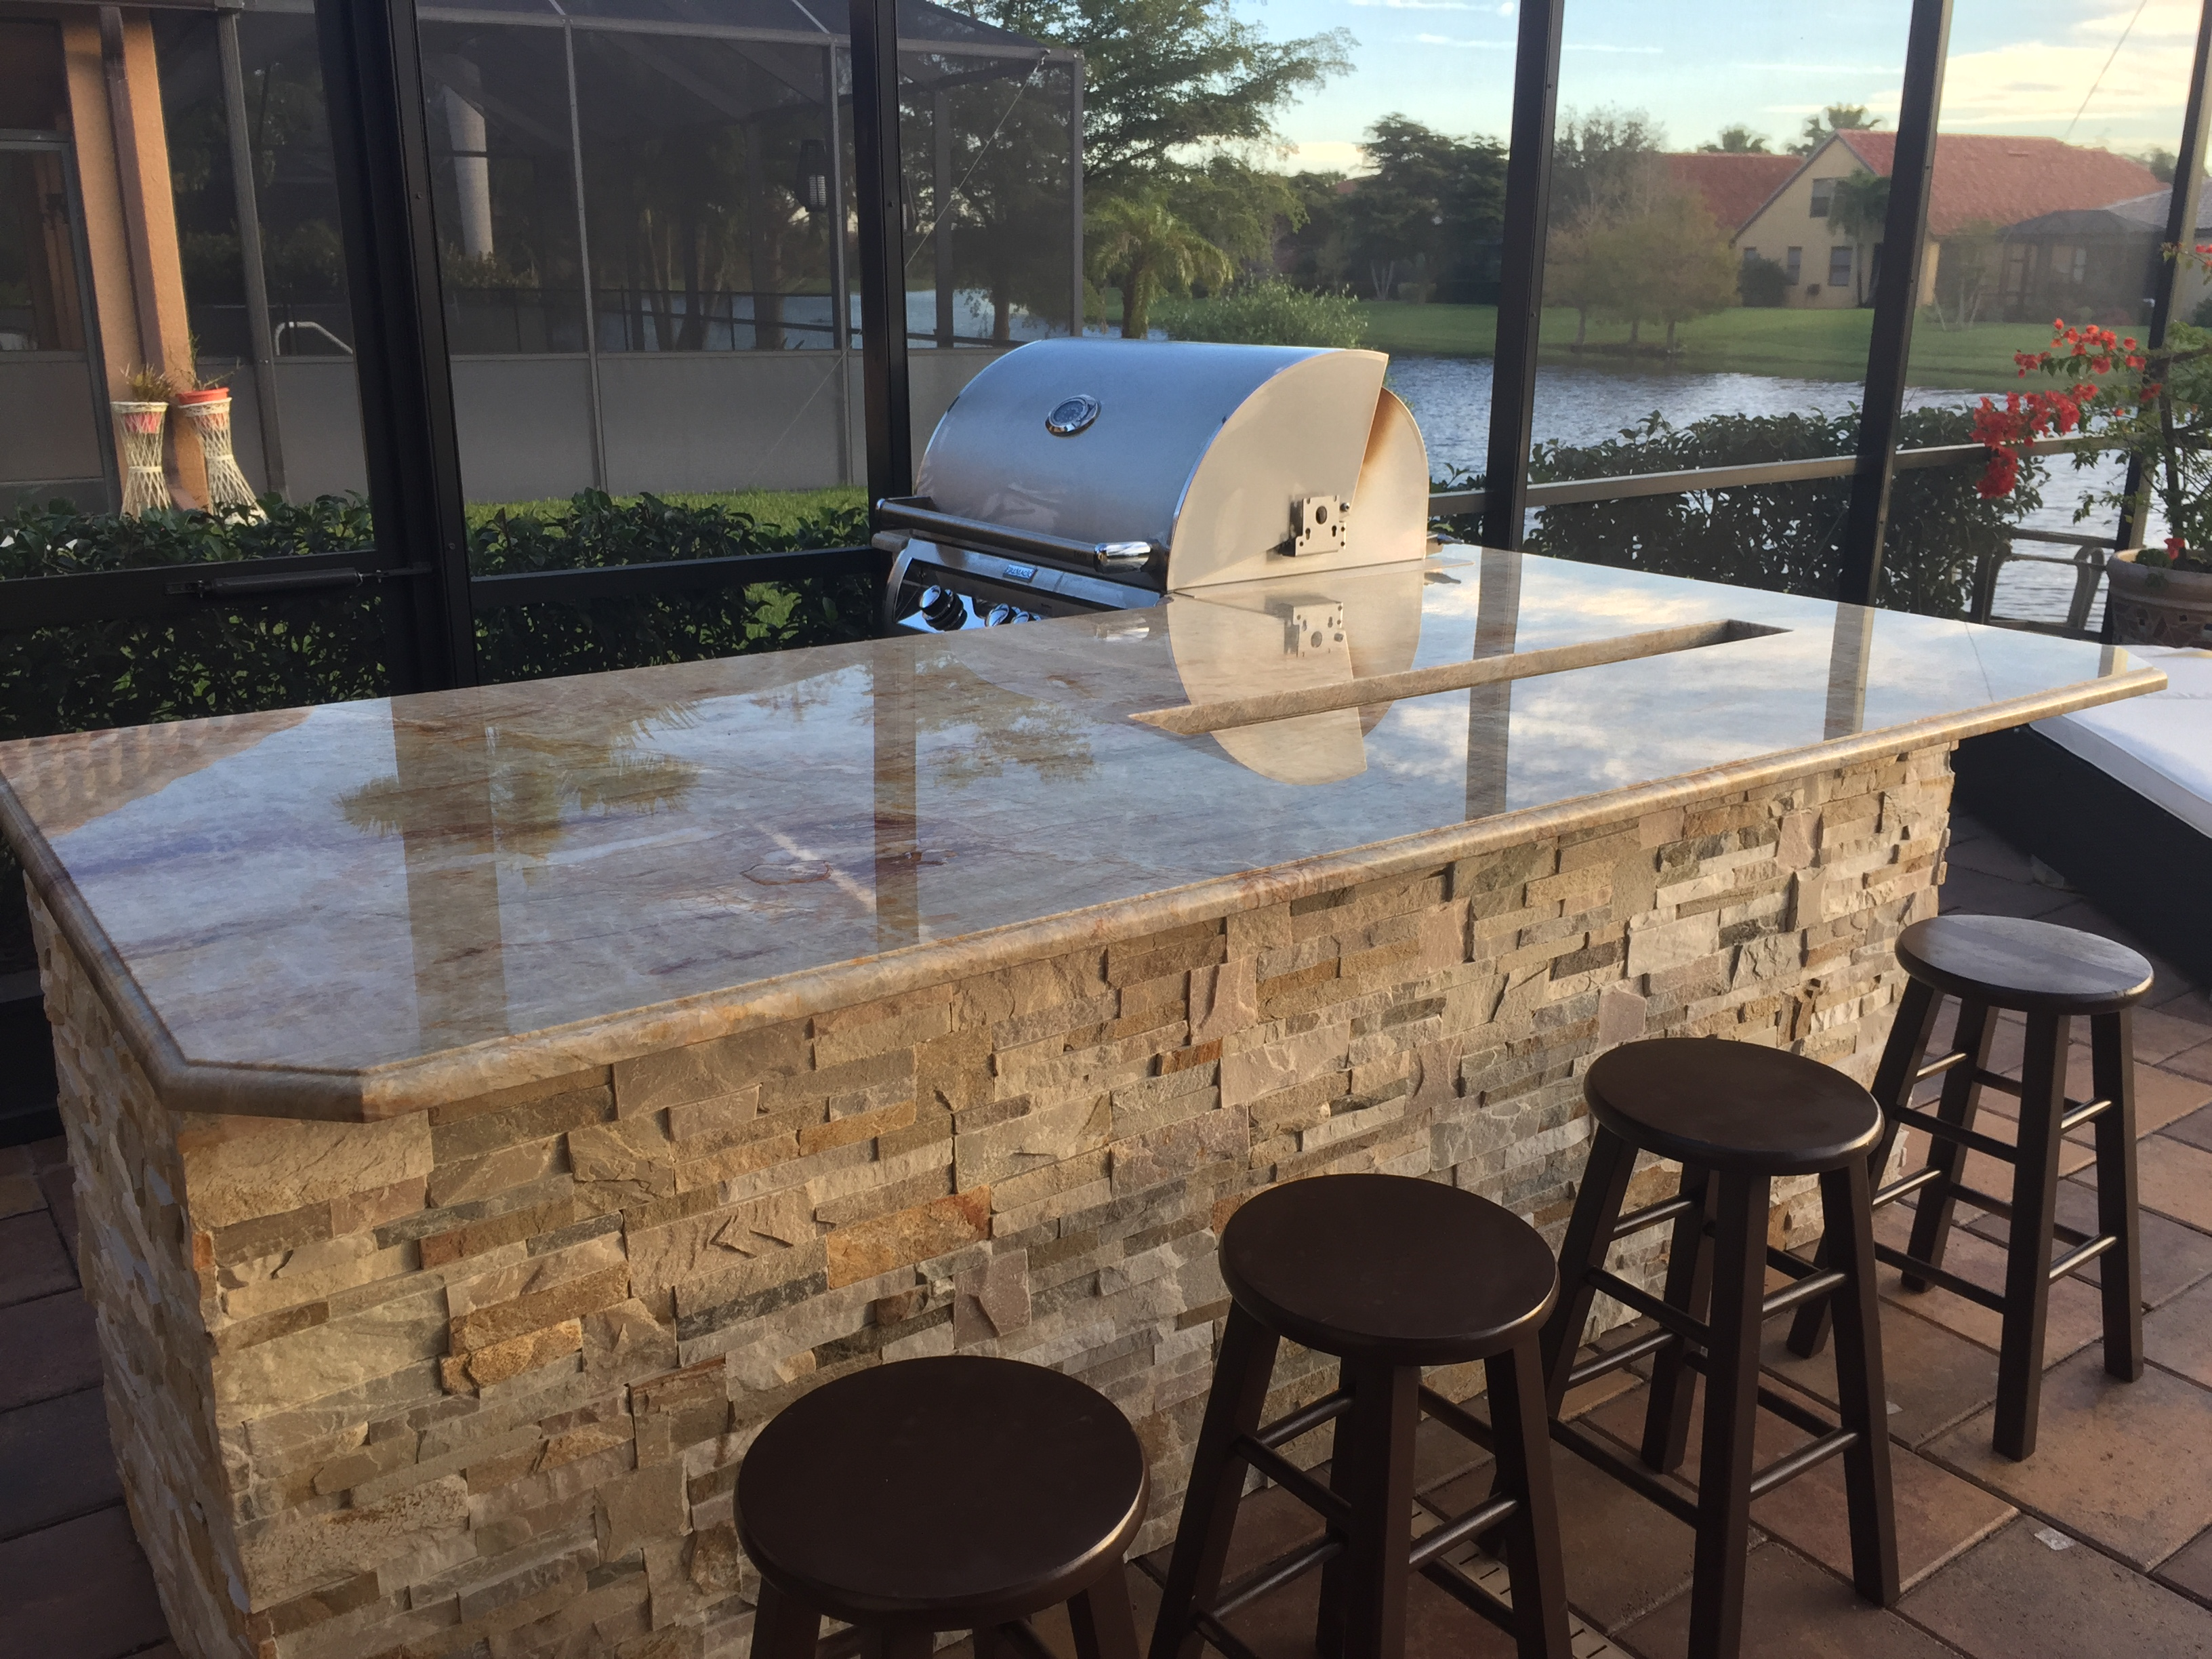 Outdoor kitchen countertop & grill